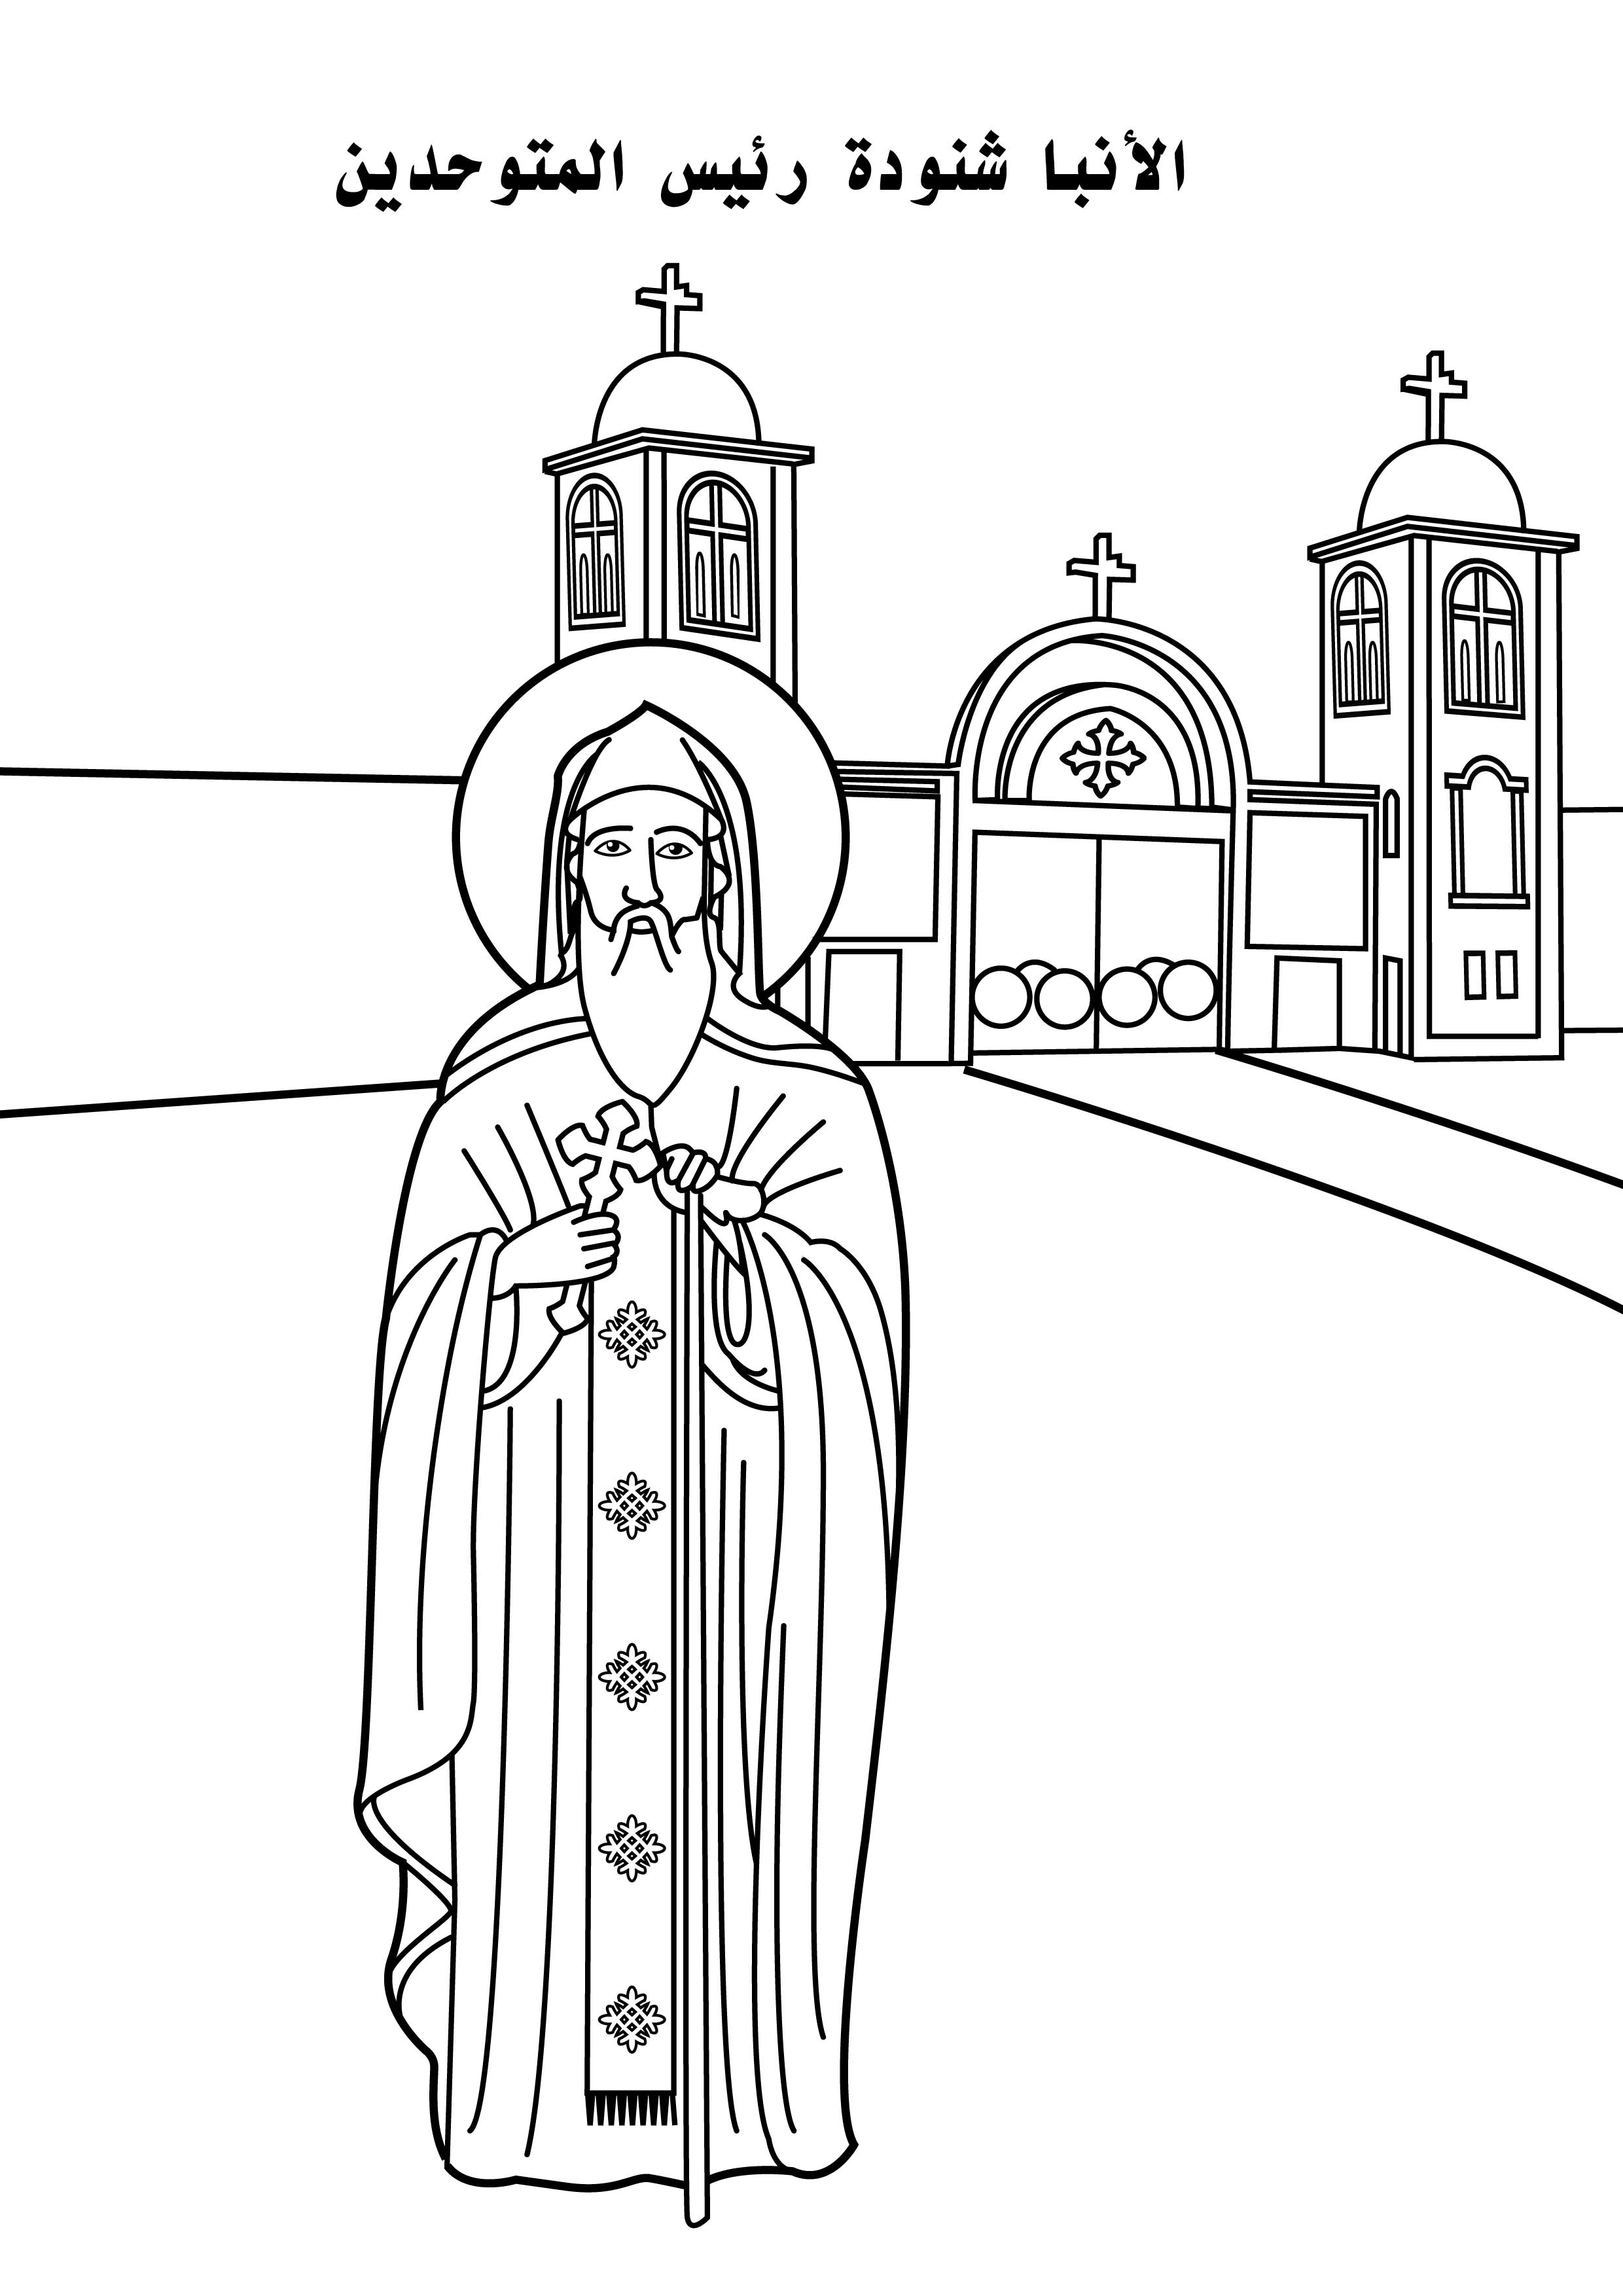 joseph coloring pages - Coloring St Anba Shenouda